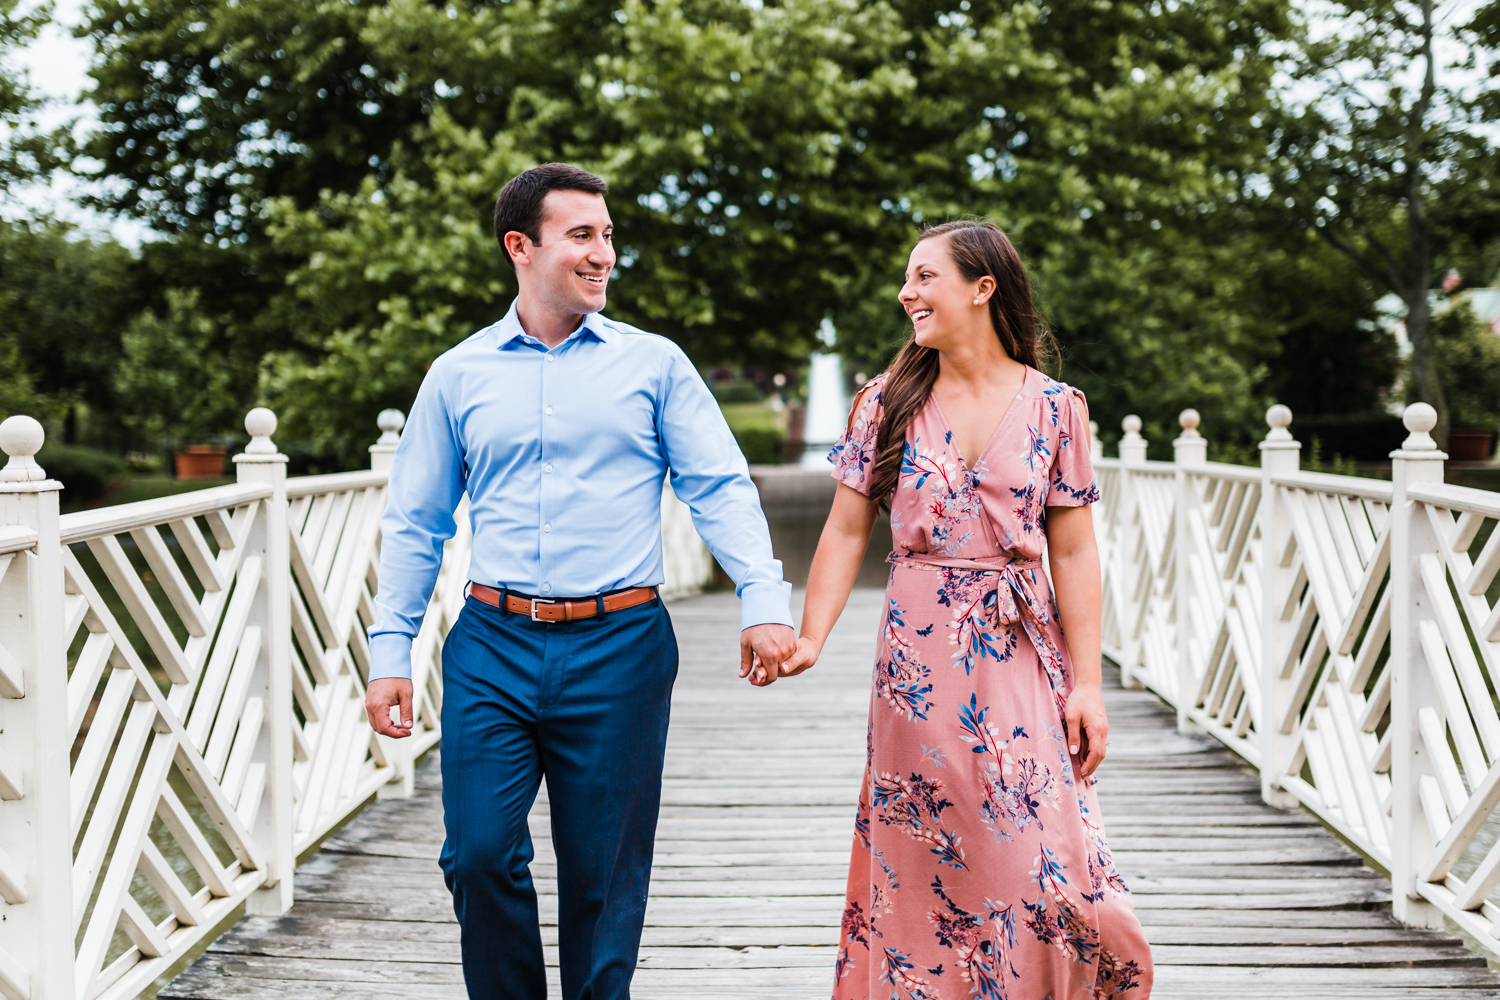 couple walking and laughing together on the bridge at Quiet Waters Park - Annapolis, MD